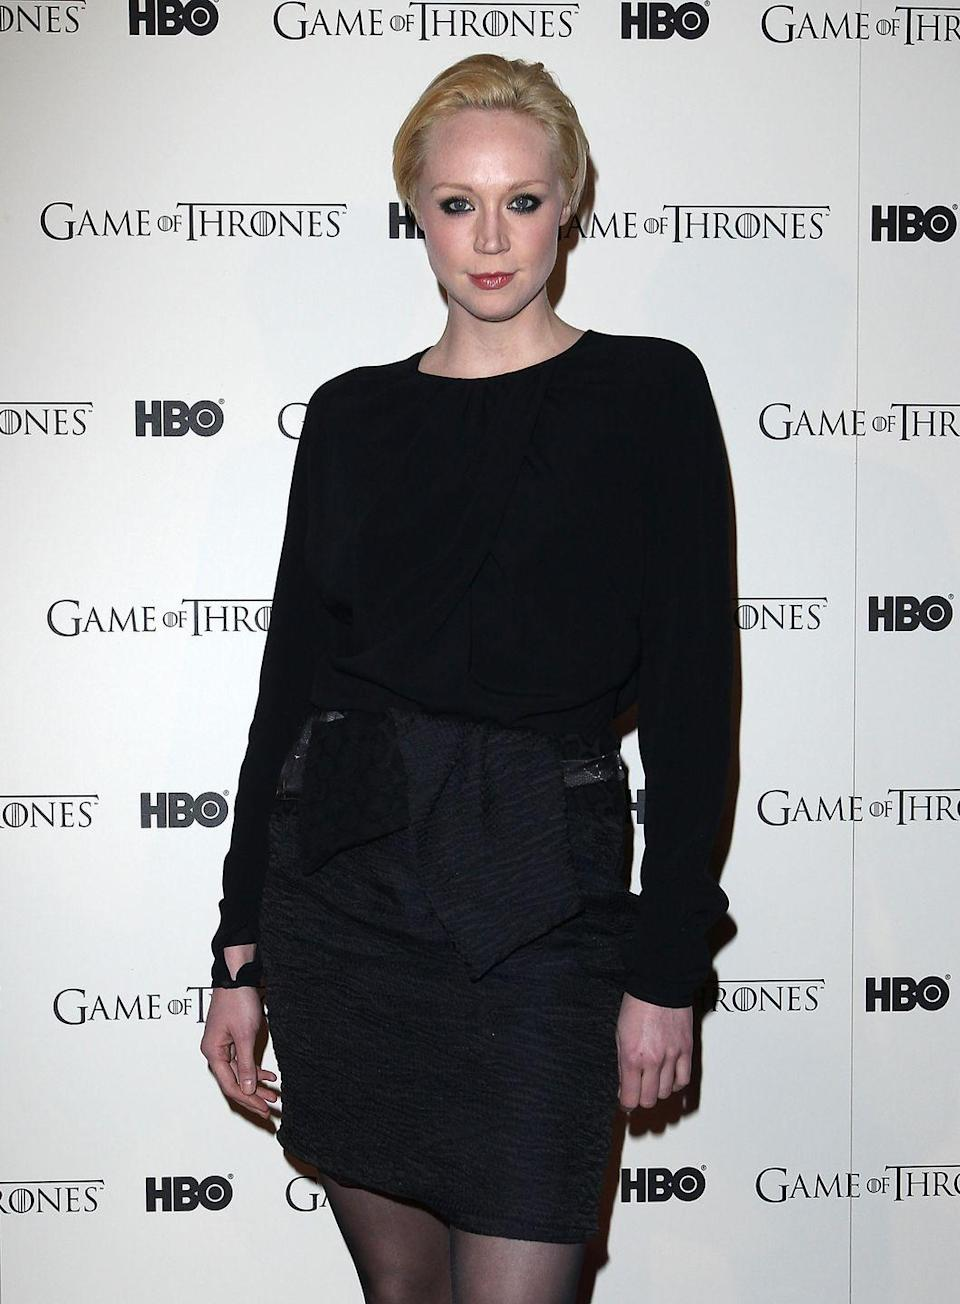 <p>Under all that shiny armor was Christie, who is also known for playing the inimitable Brienne of Tarth in the HBO series <em>Game of Thrones. </em></p>